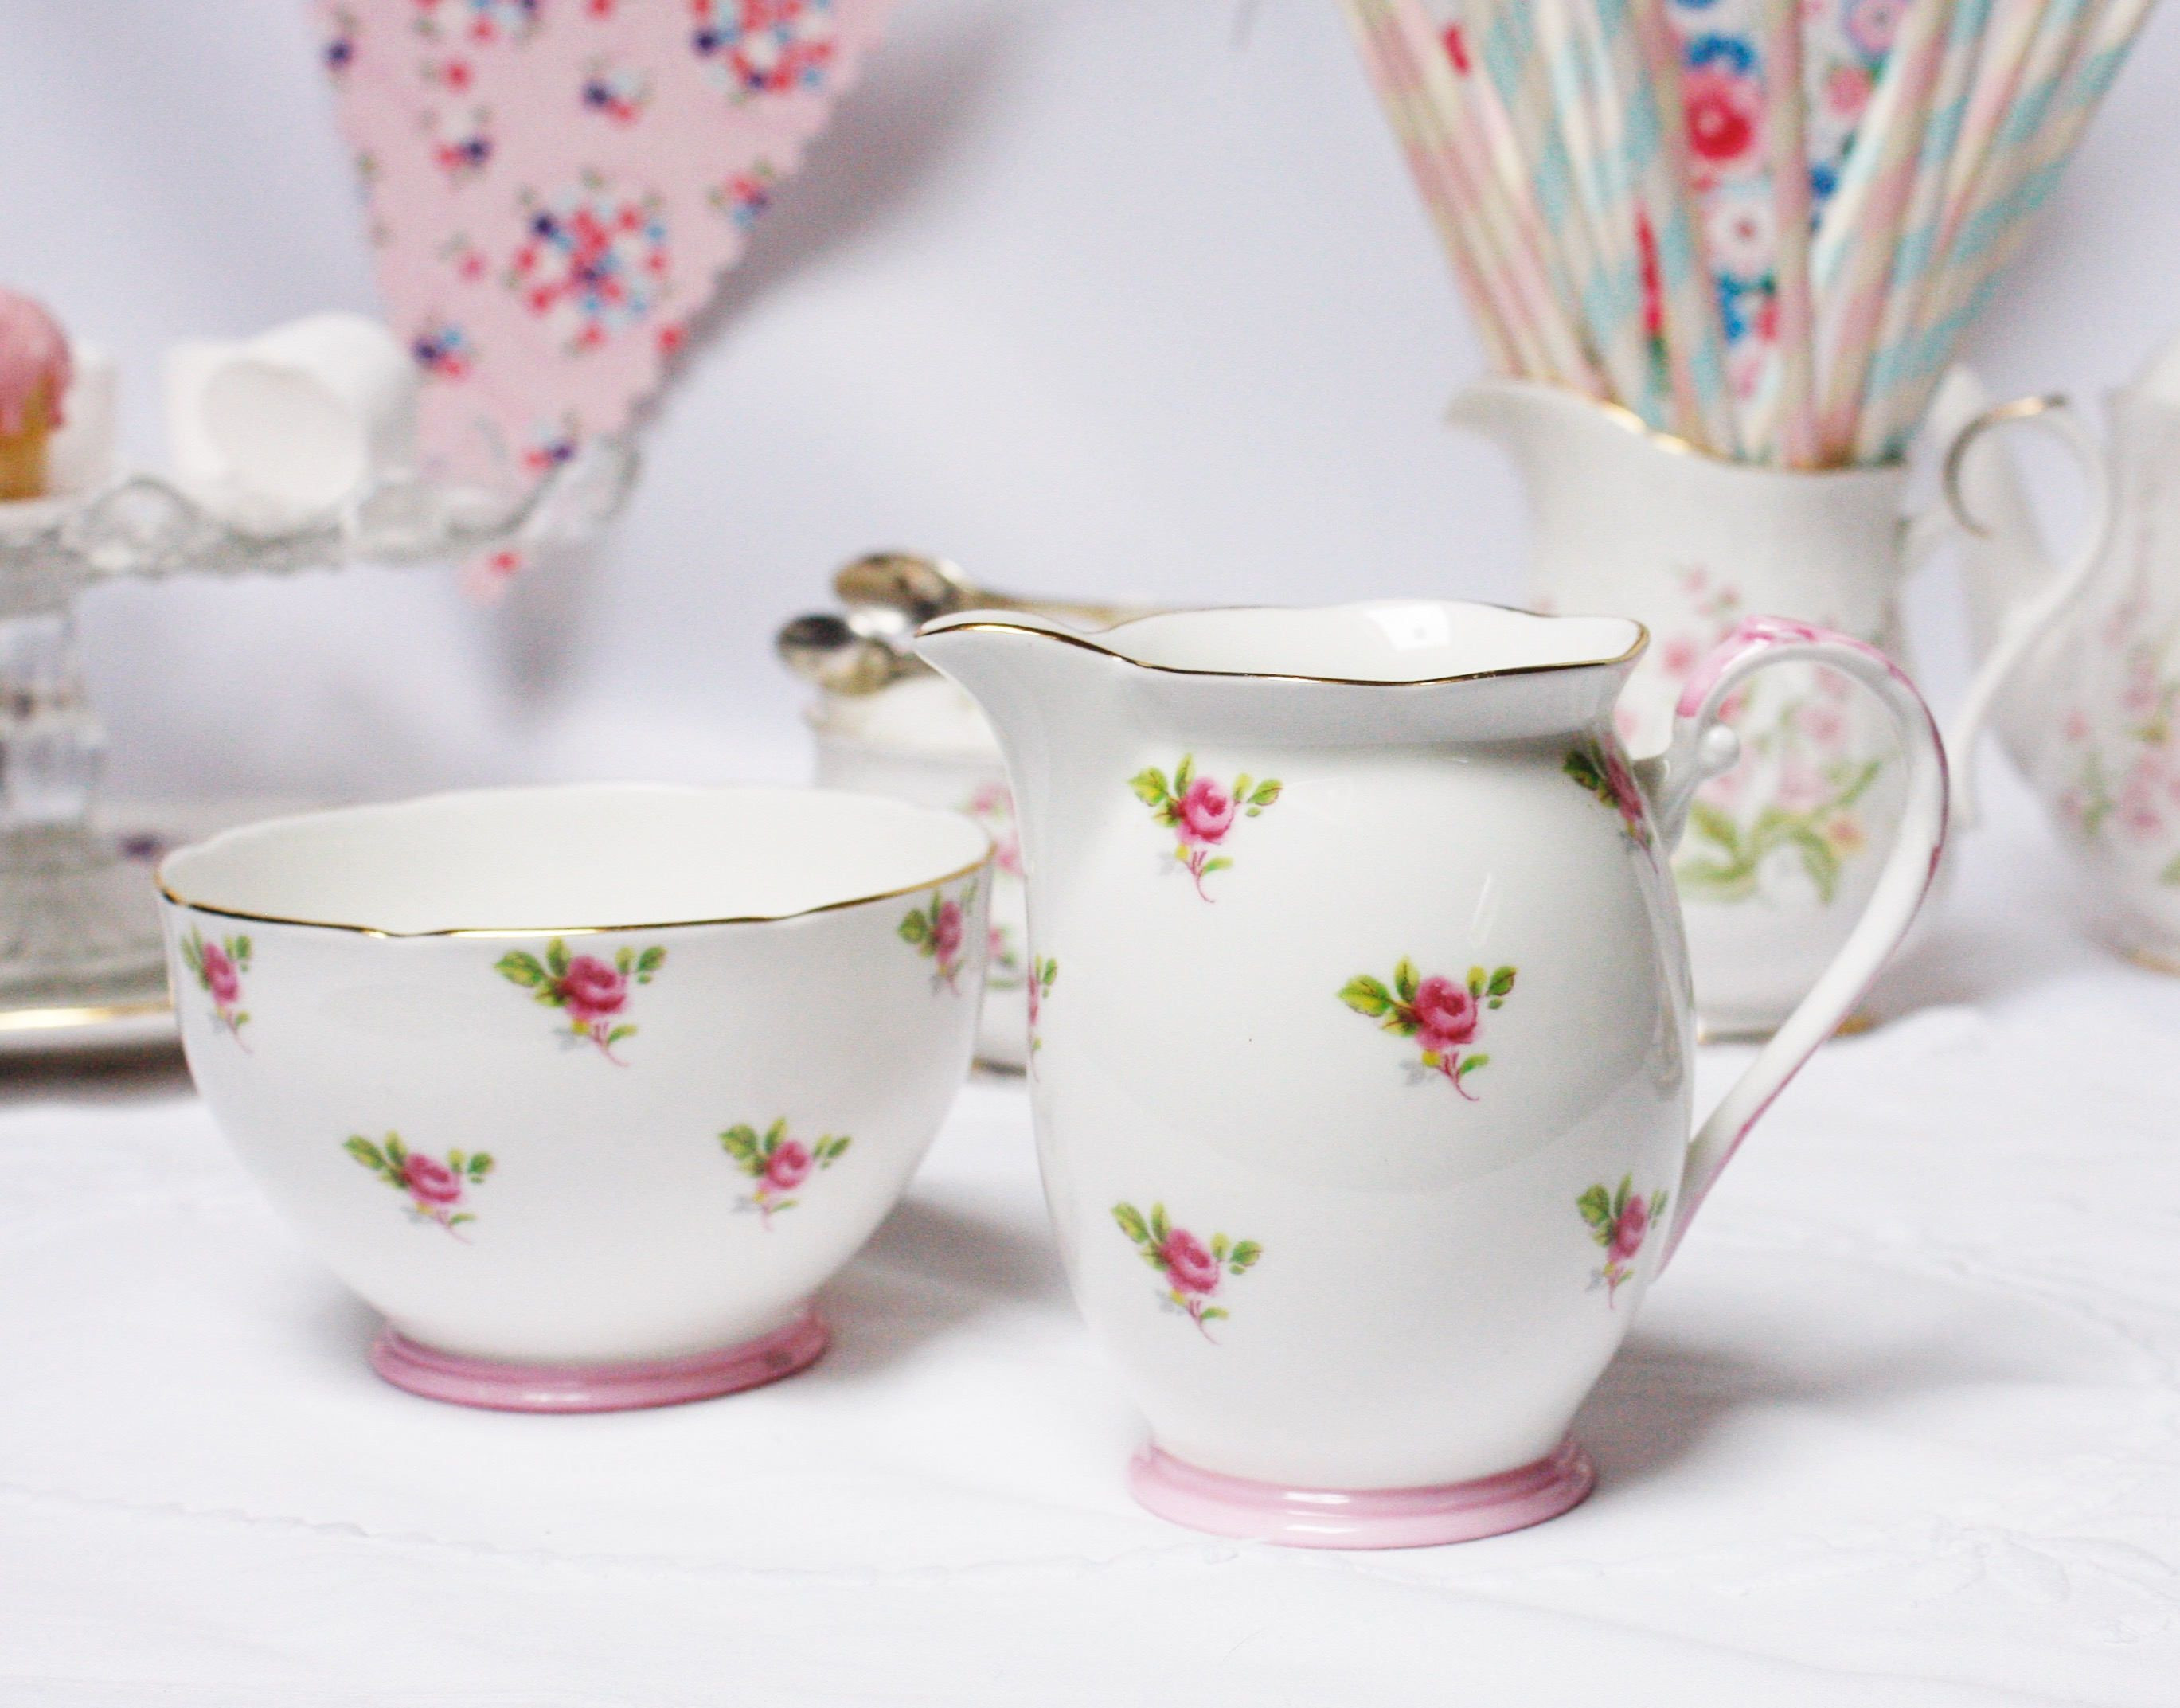 Aynsley China Cottage Garden Vase Of Ditsy Rose Grafton English Bone China Classic Creamer Milk Jug Regarding Ditsy Rose Grafton English Bone China Classic Creamer Milk Jug and Sugar Bowl